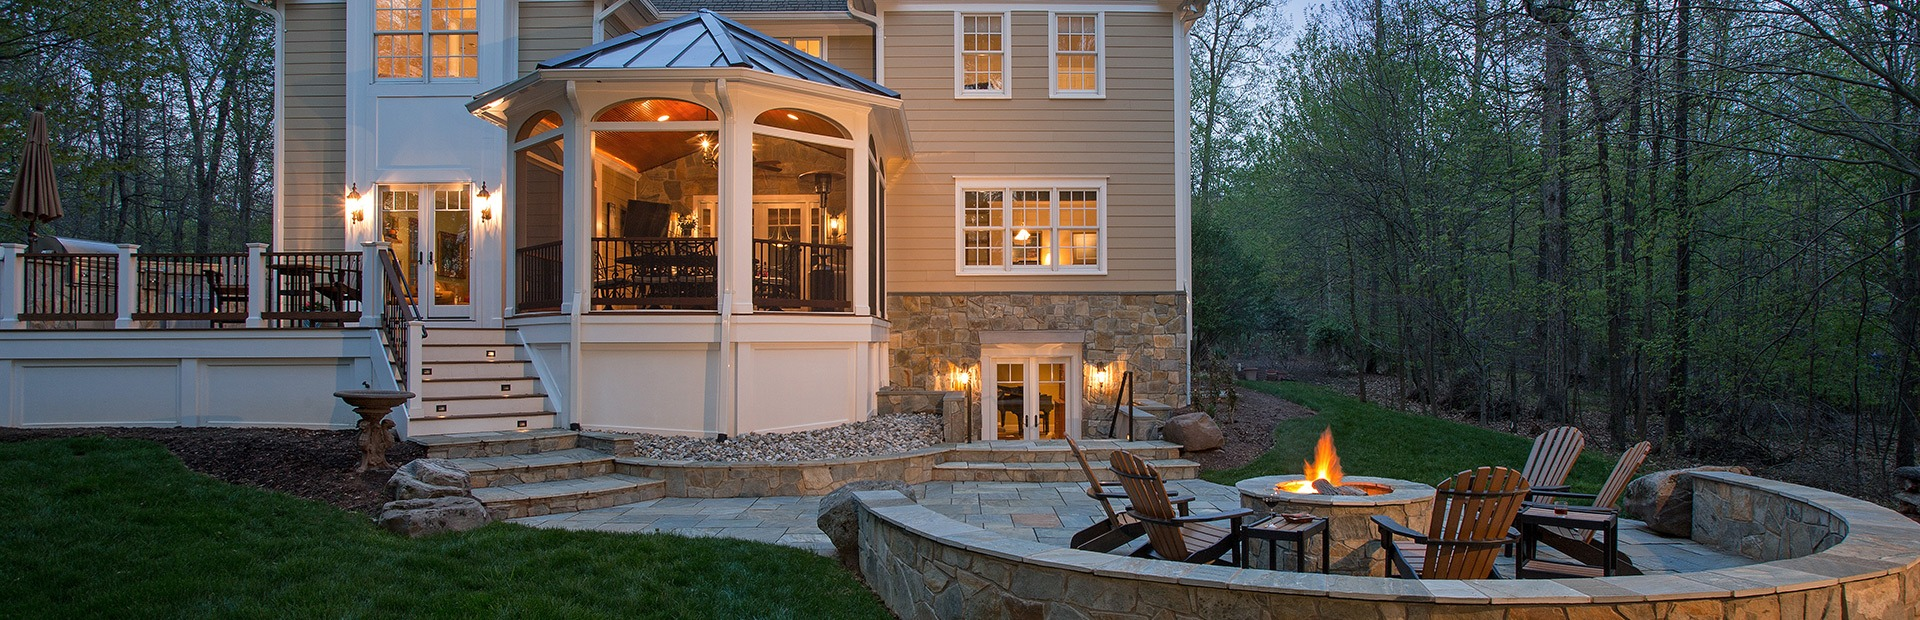 Outdoor living space contractors northern va sun design for House plans with outdoor living space